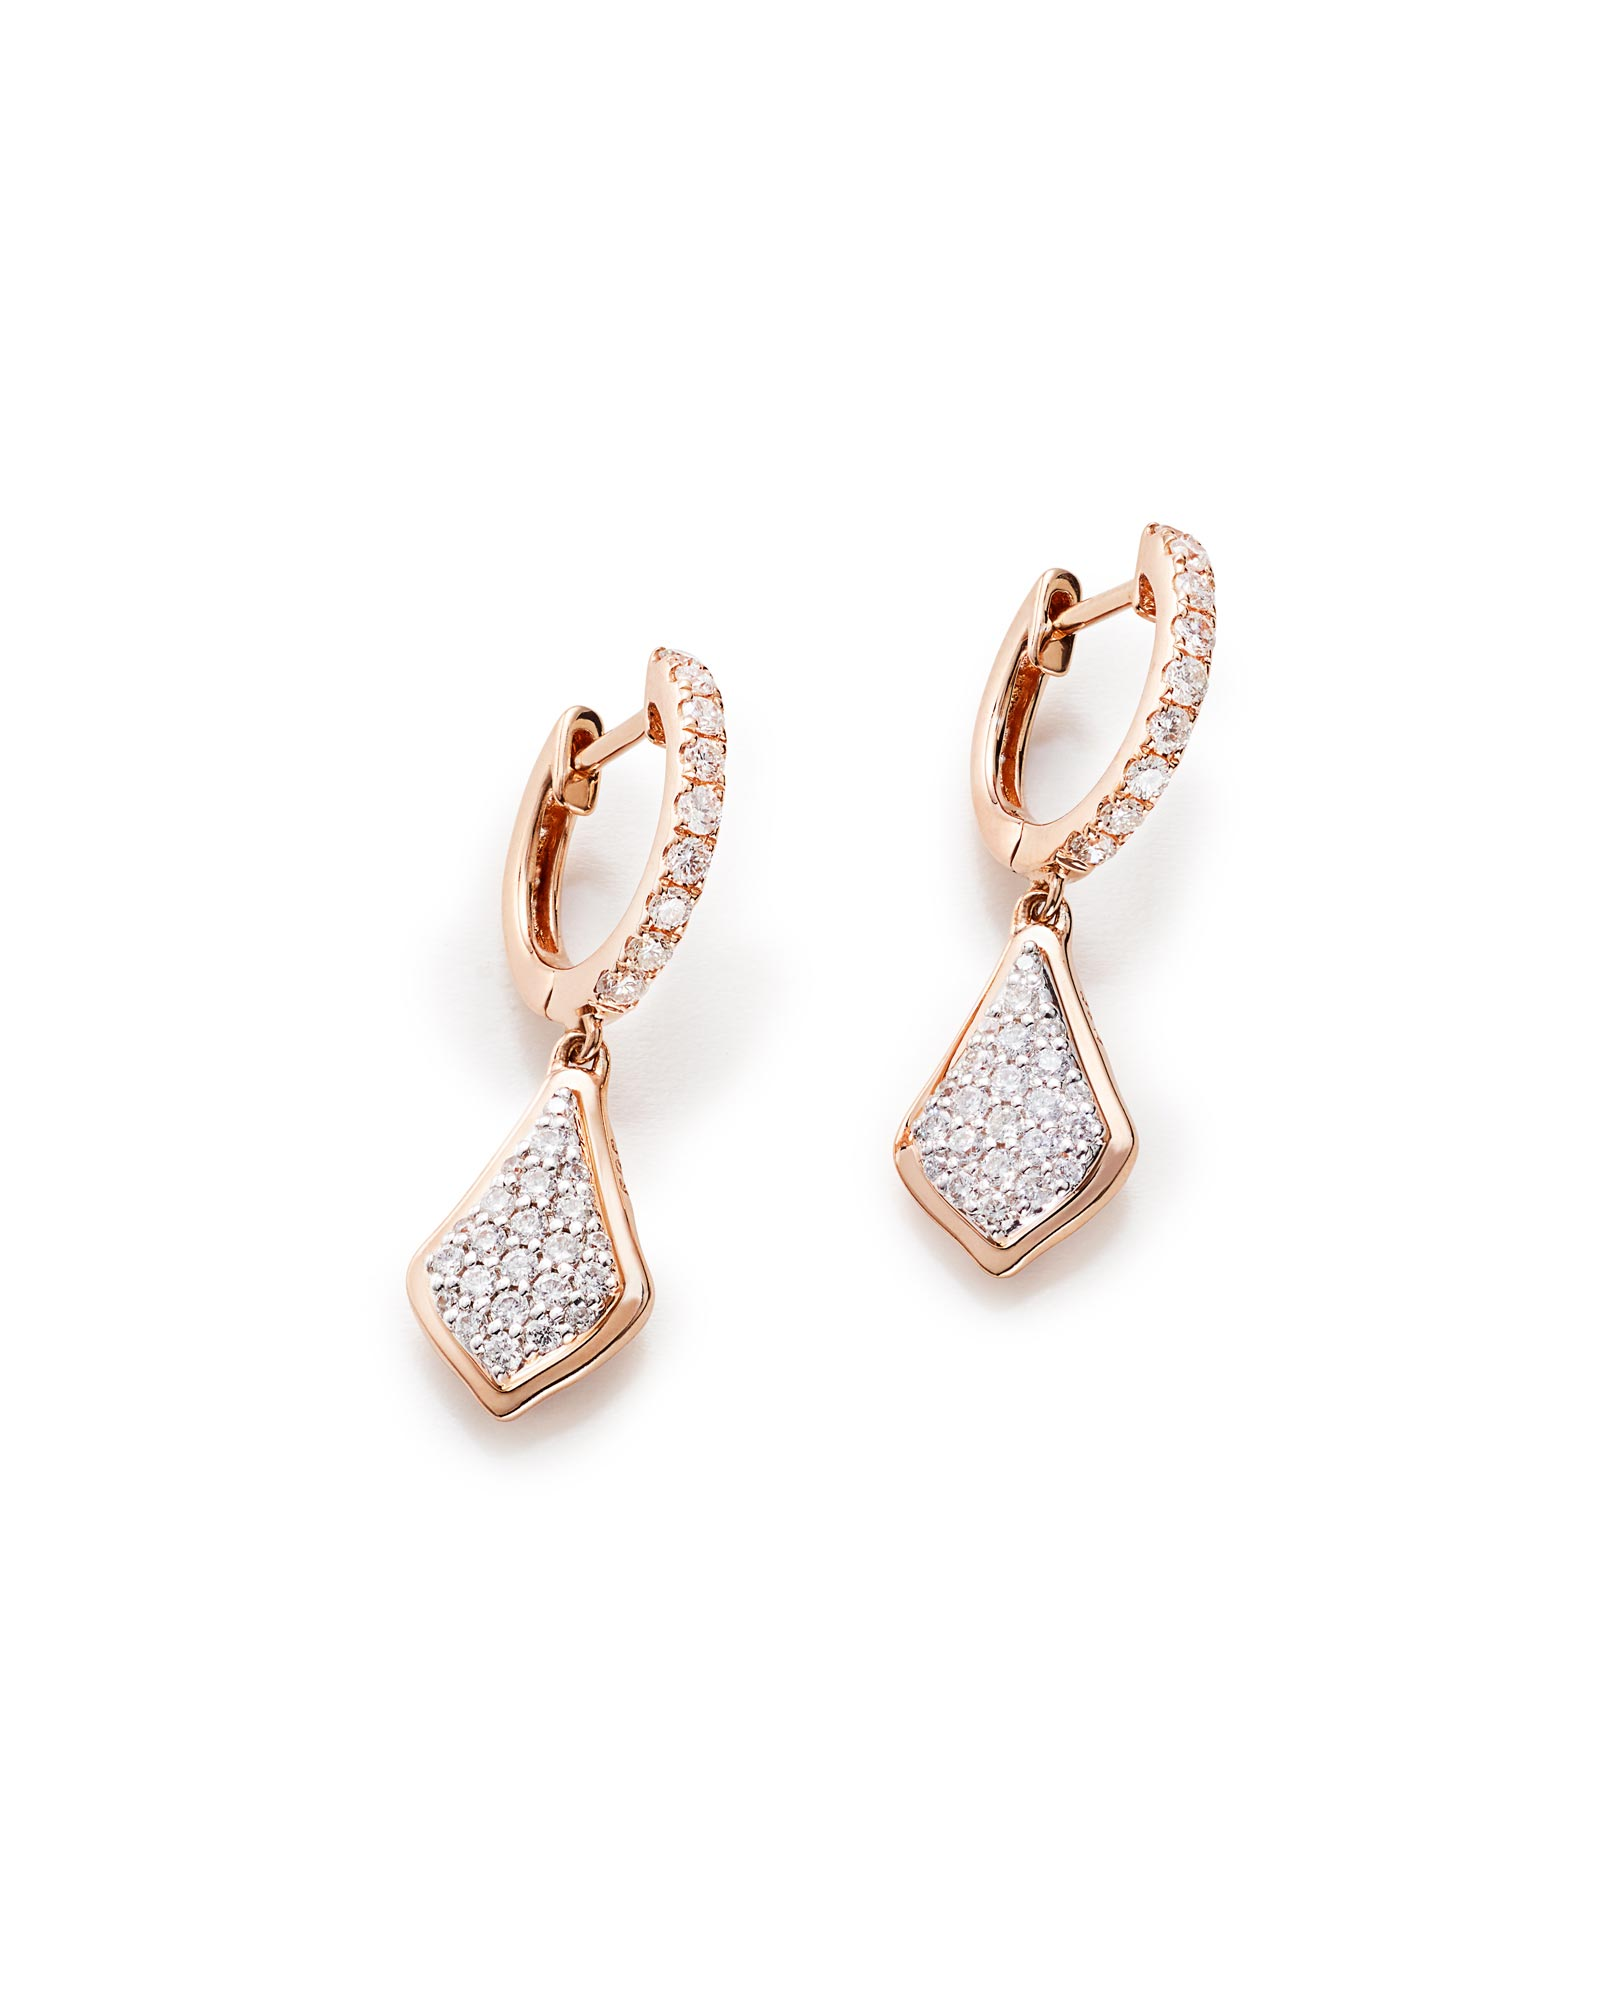 Luella Drop Earrings in Pave Diamond and 14k Rose Gold